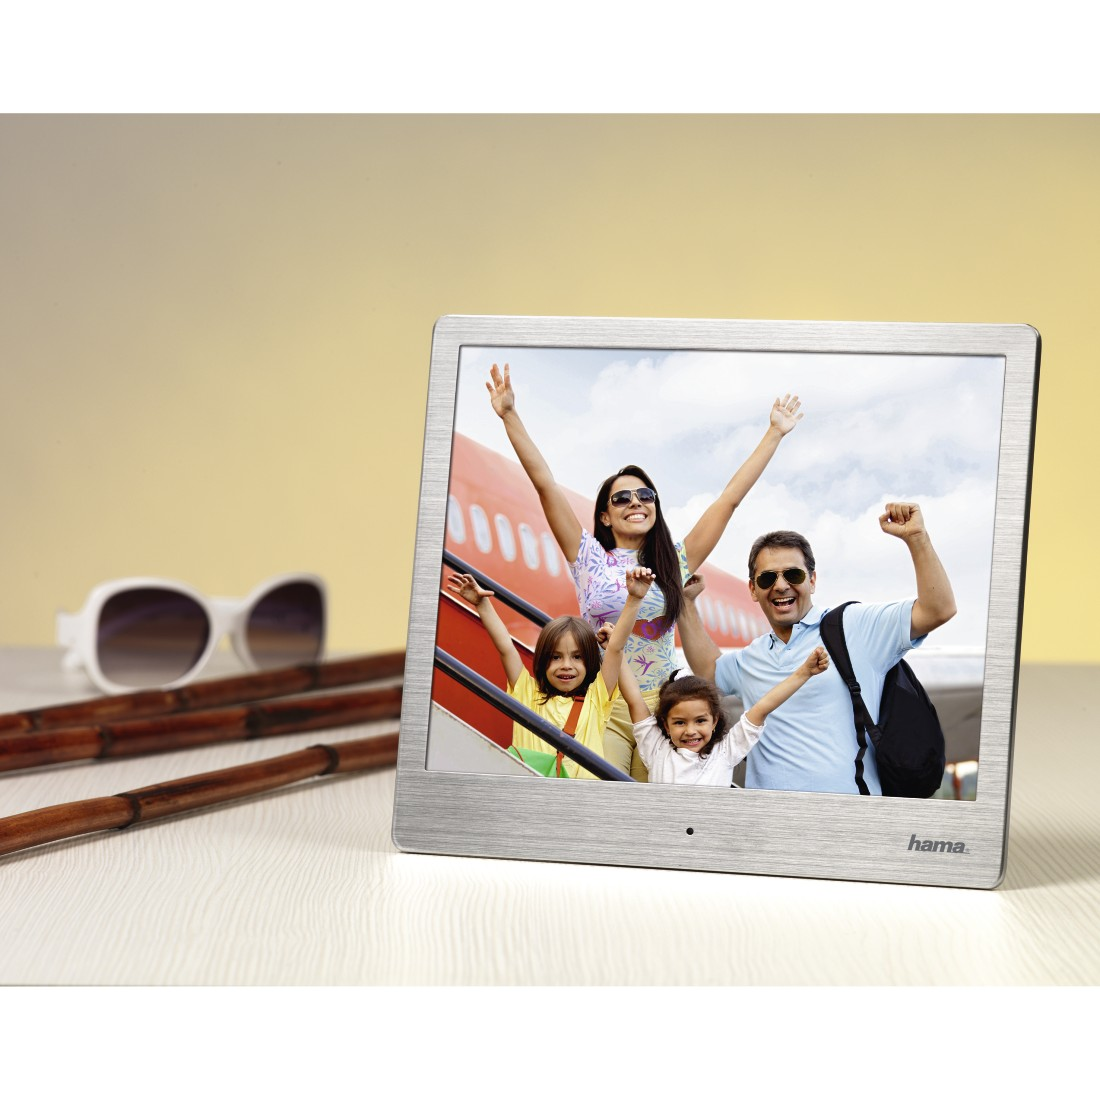 "awx High-Res Appliance - Hama, ""8SLB"" Digital Photo Frame, 20.32 cm (8.0""), slim steel, 1024 x 768 px"